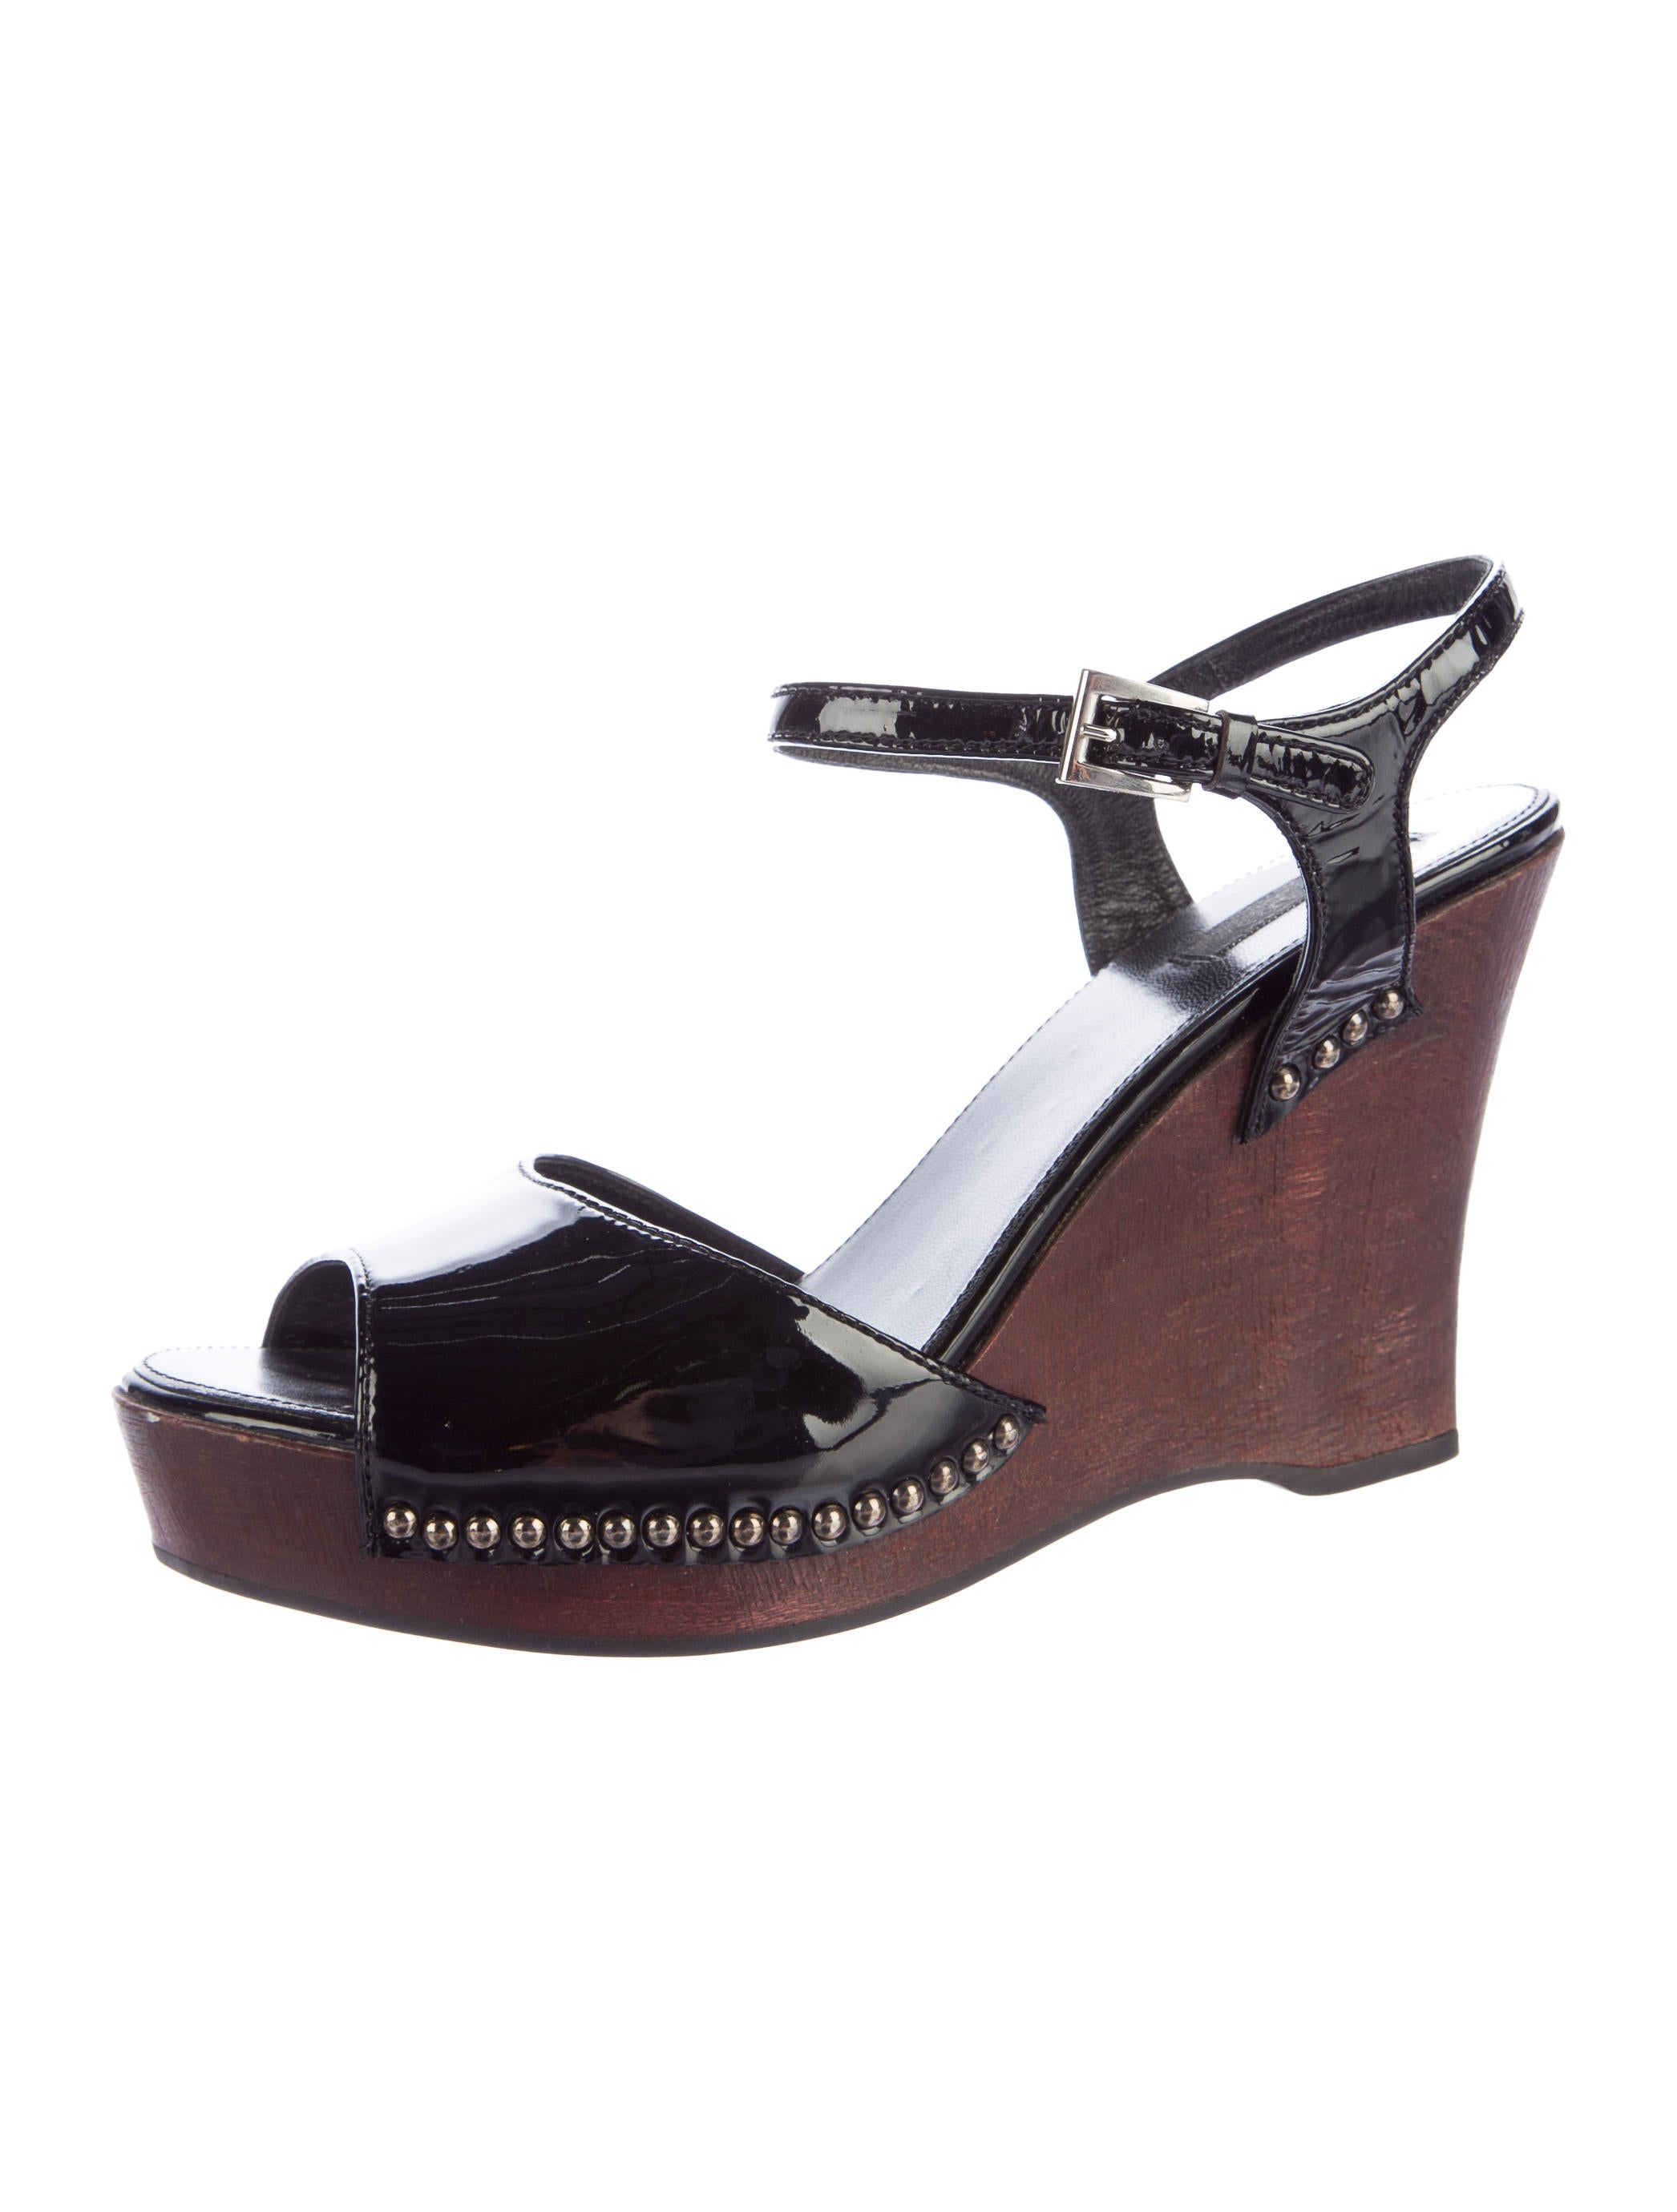 prada patent leather wedge sandals shoes pra135014